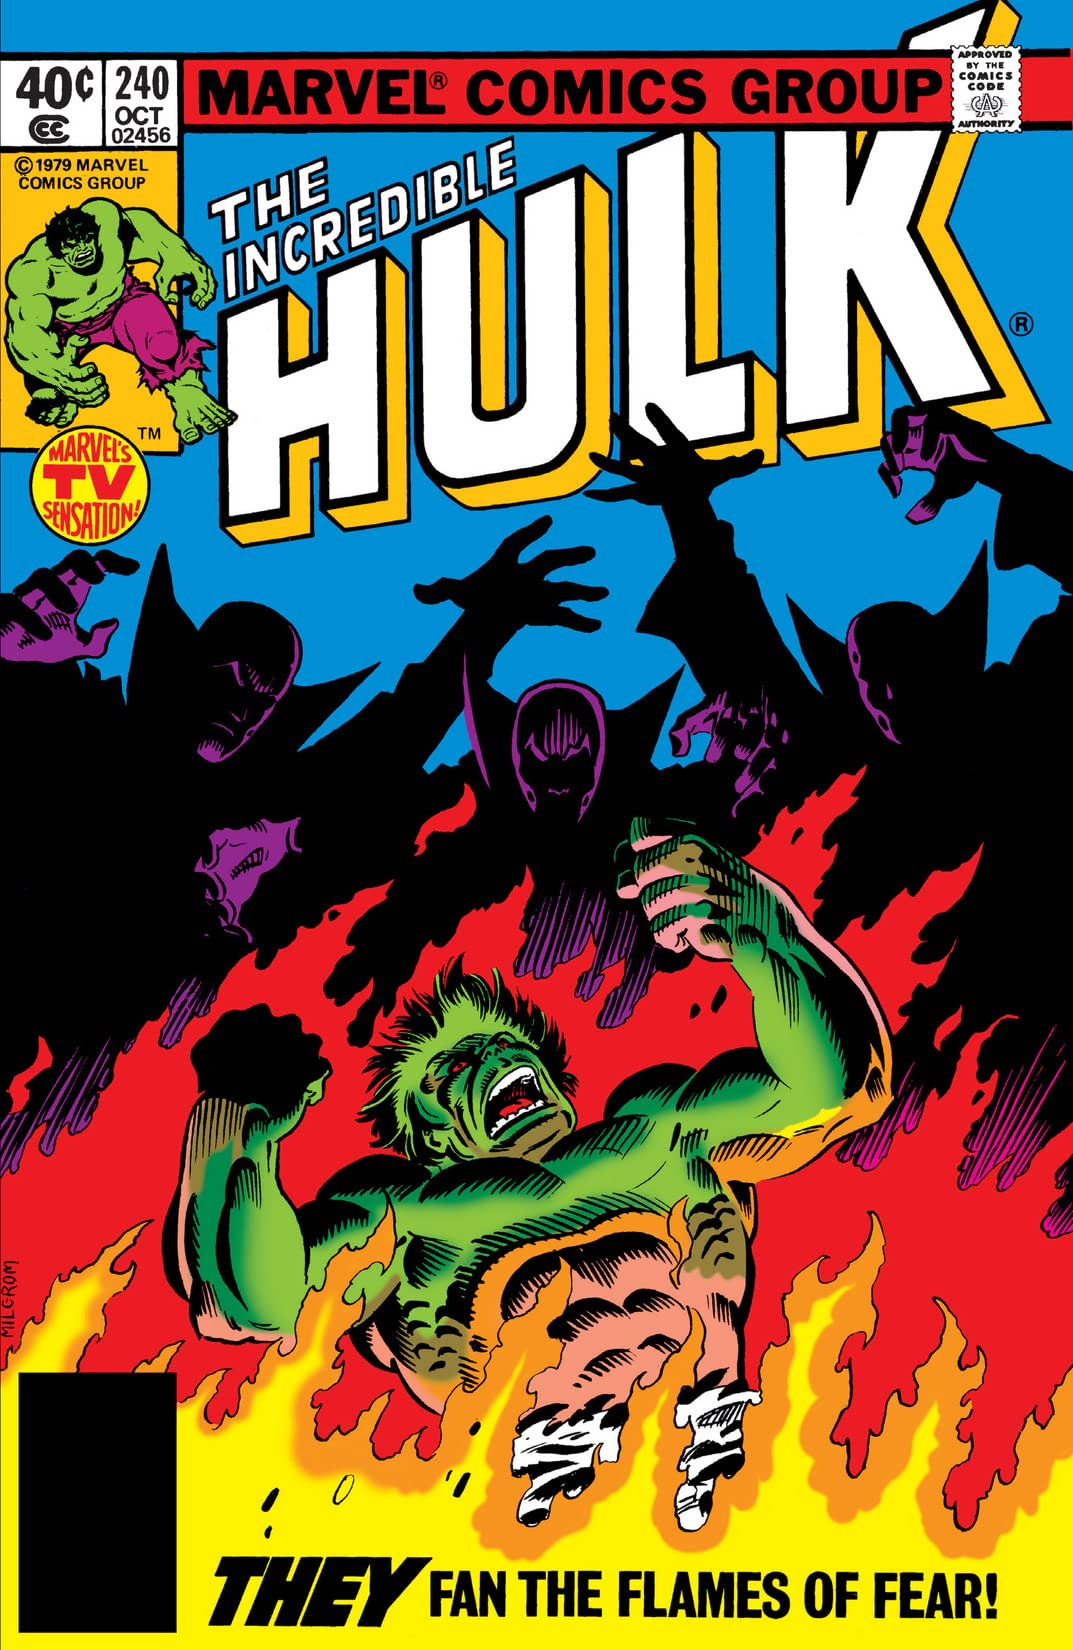 Incredible Hulk Vol 1 240